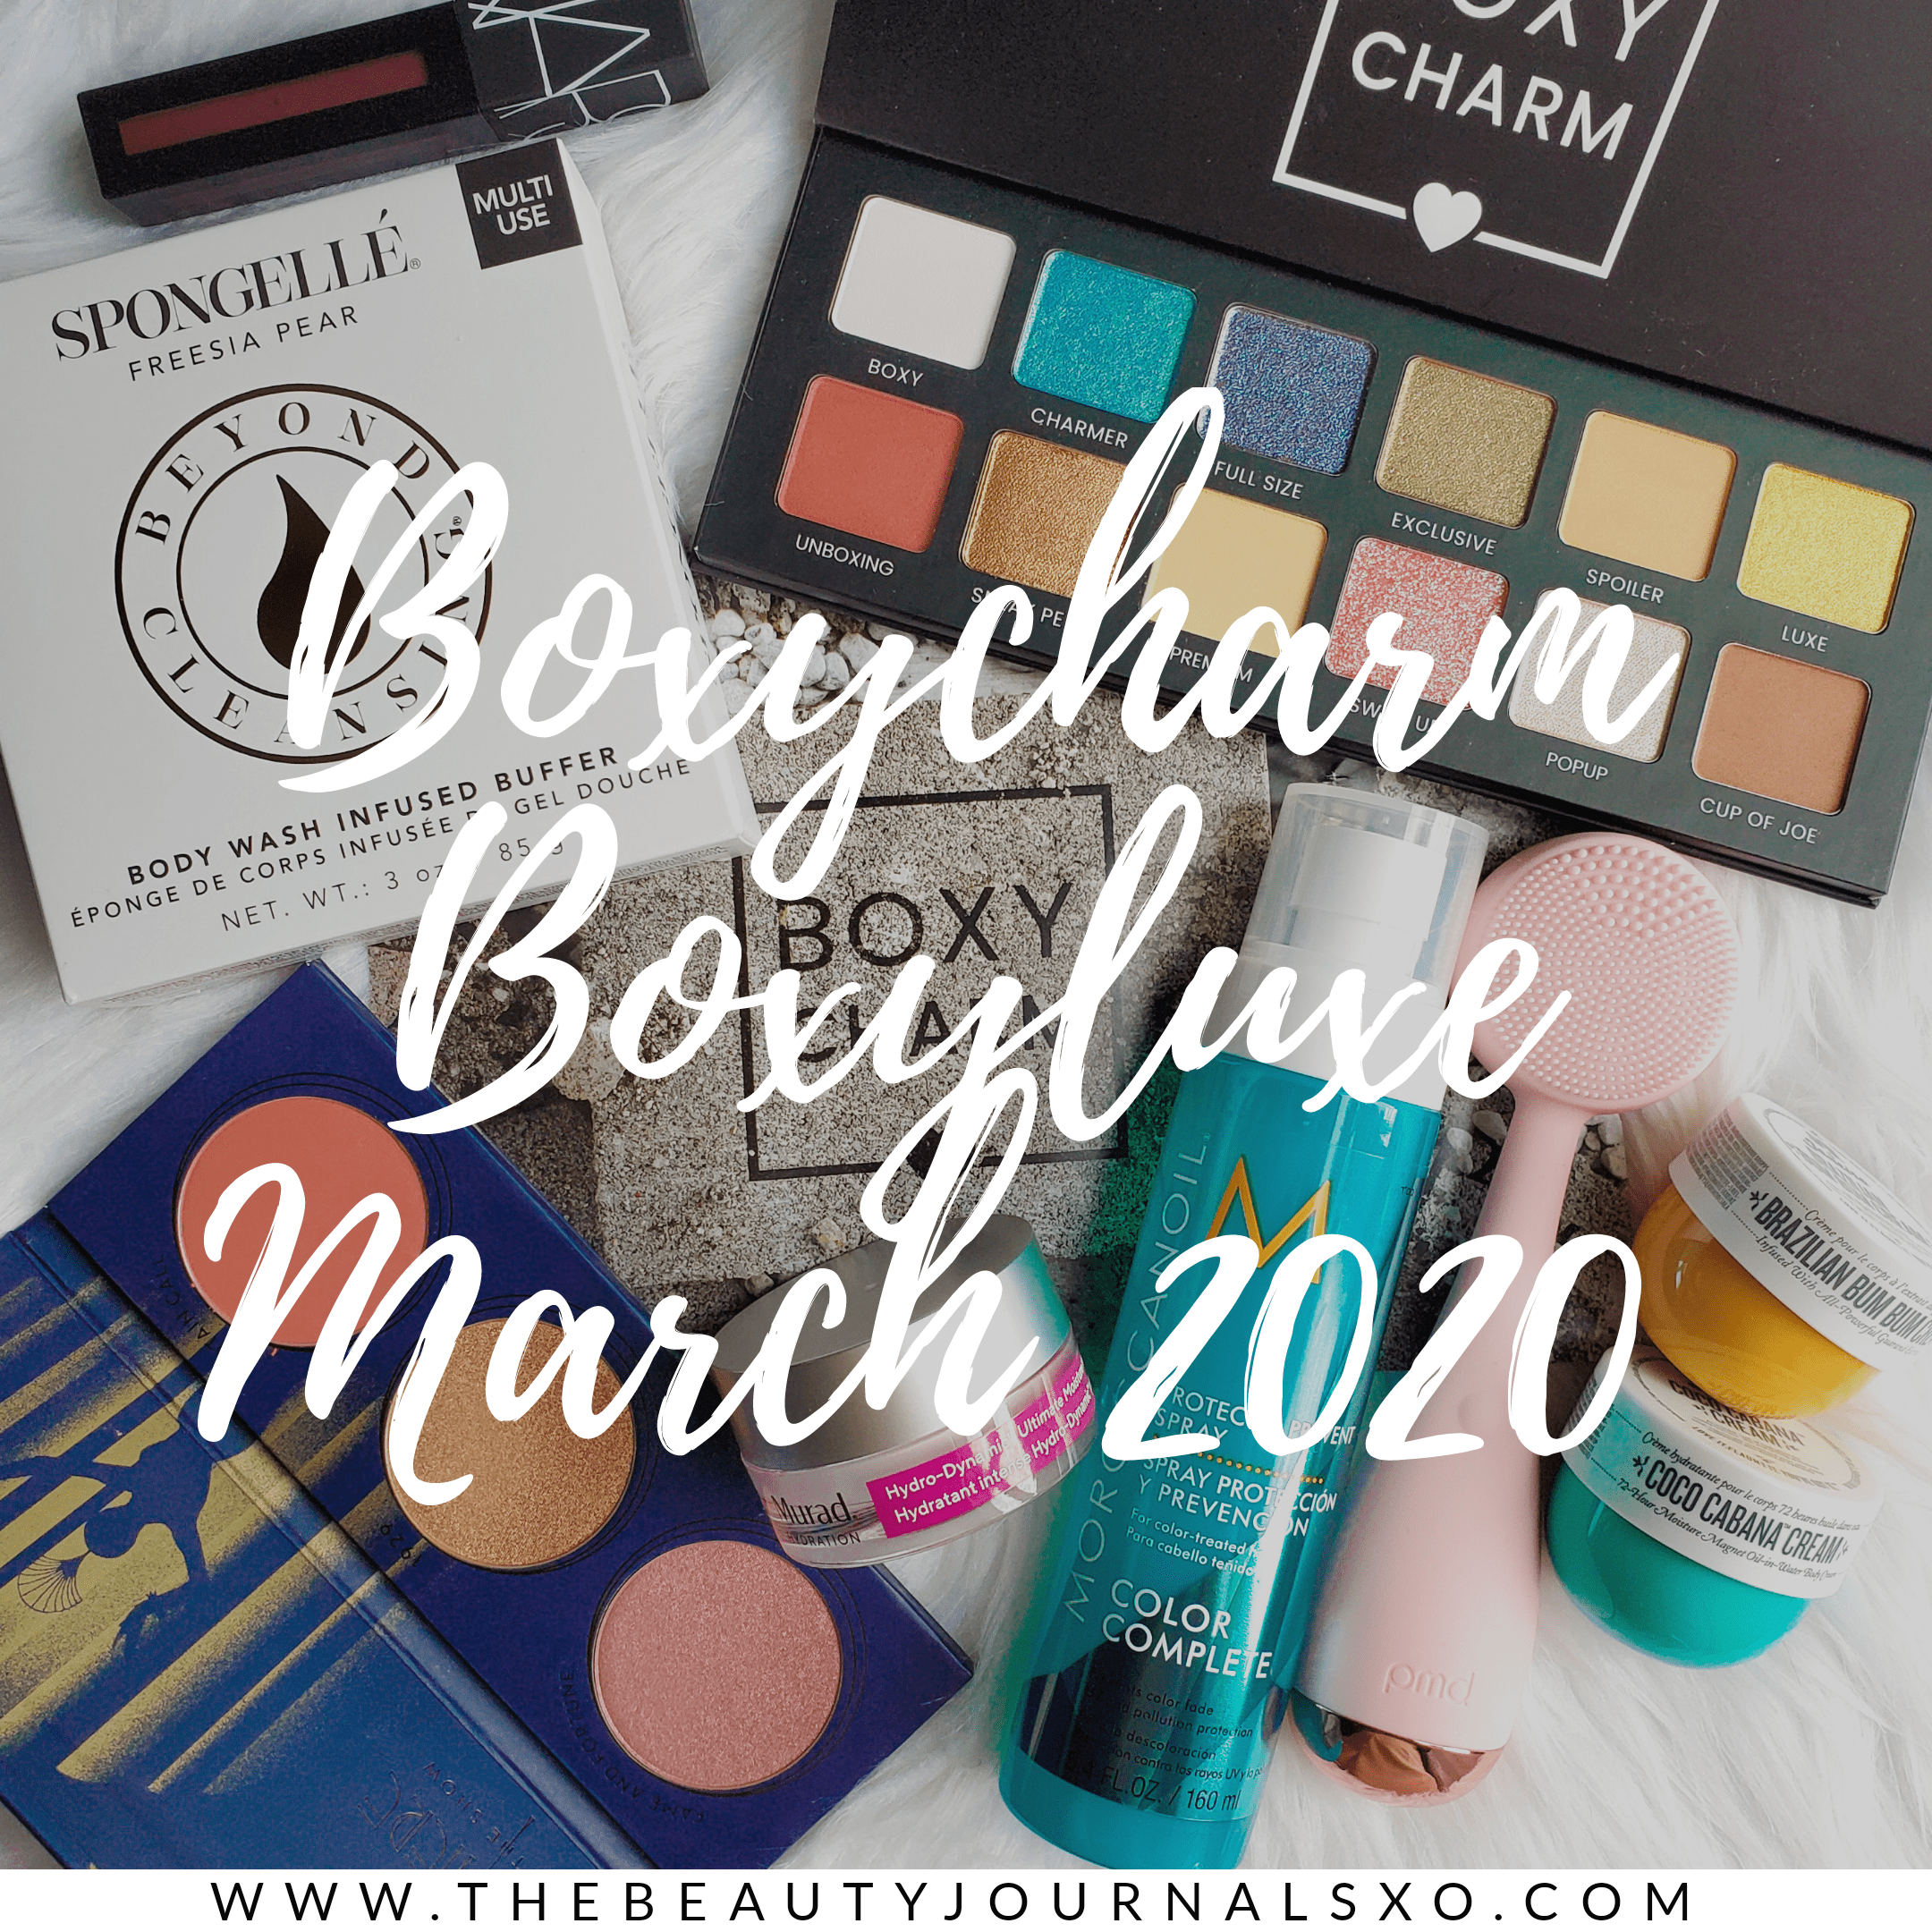 Boxycharm Boxyluxe March 2020 Spoilers and Unboxing in